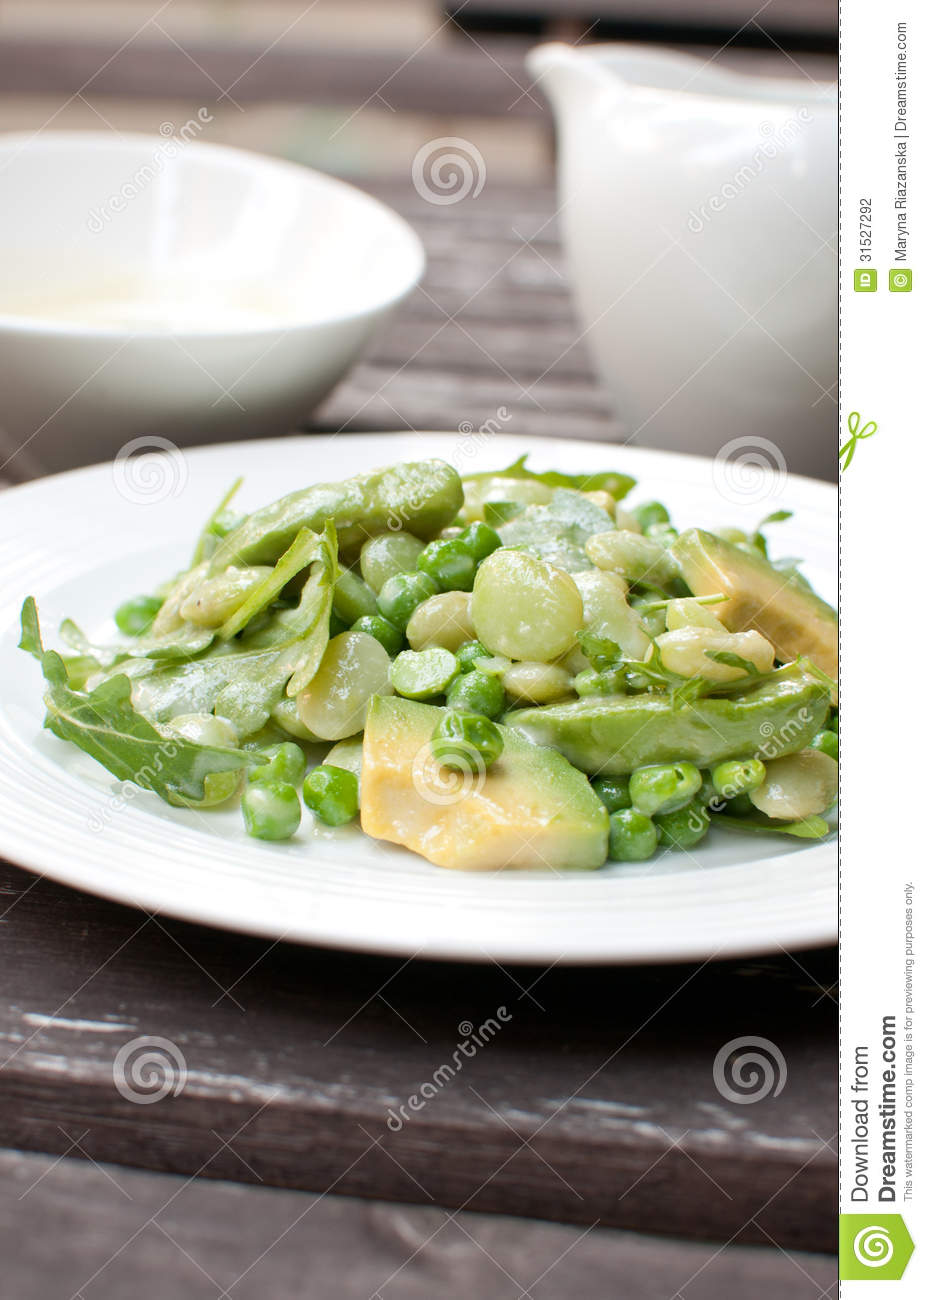 Salad With Avocado, Green Beans And Arugula Stock Photography - Image ...